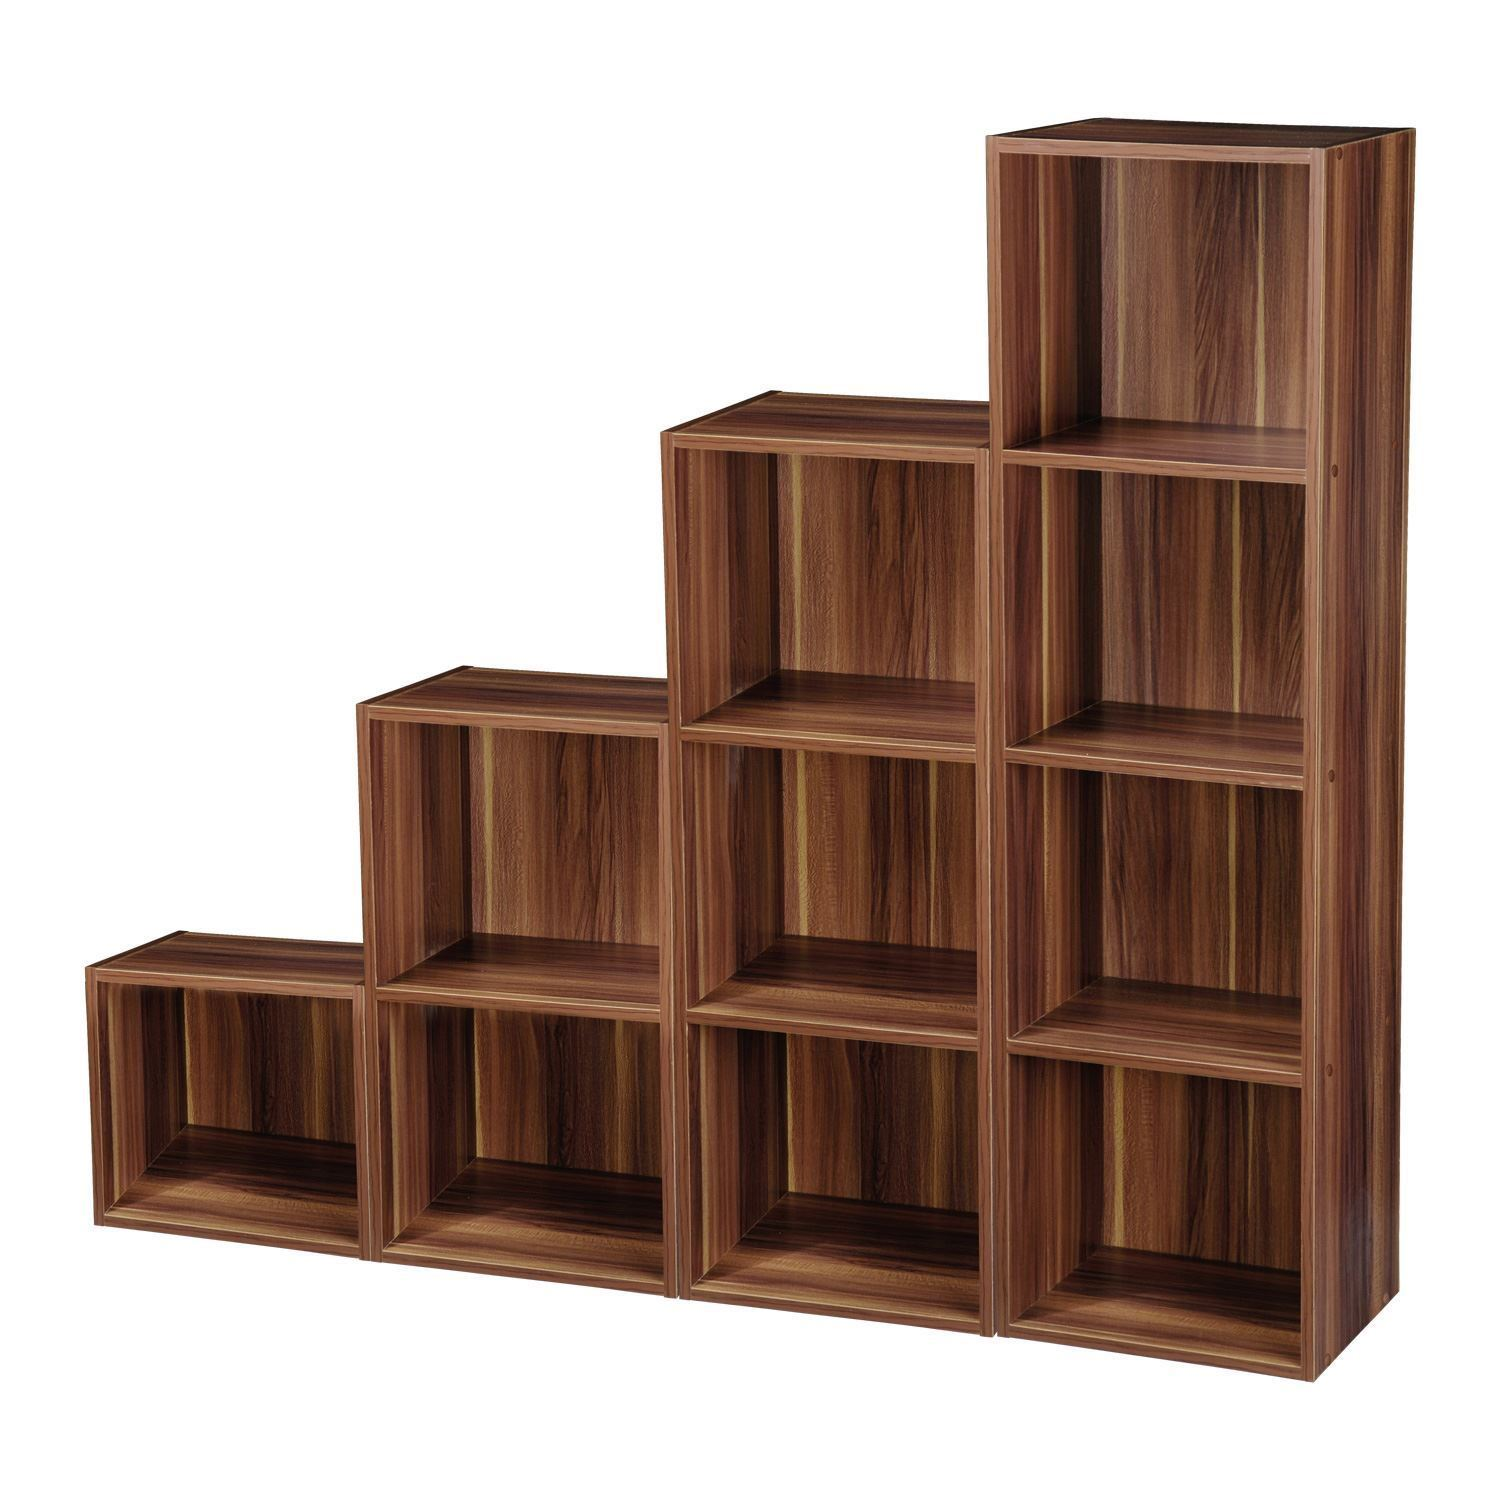 TIER WOODEN BOOKCASE SHELVING BOOKSHELF STORAGE FURNITURE CUBE